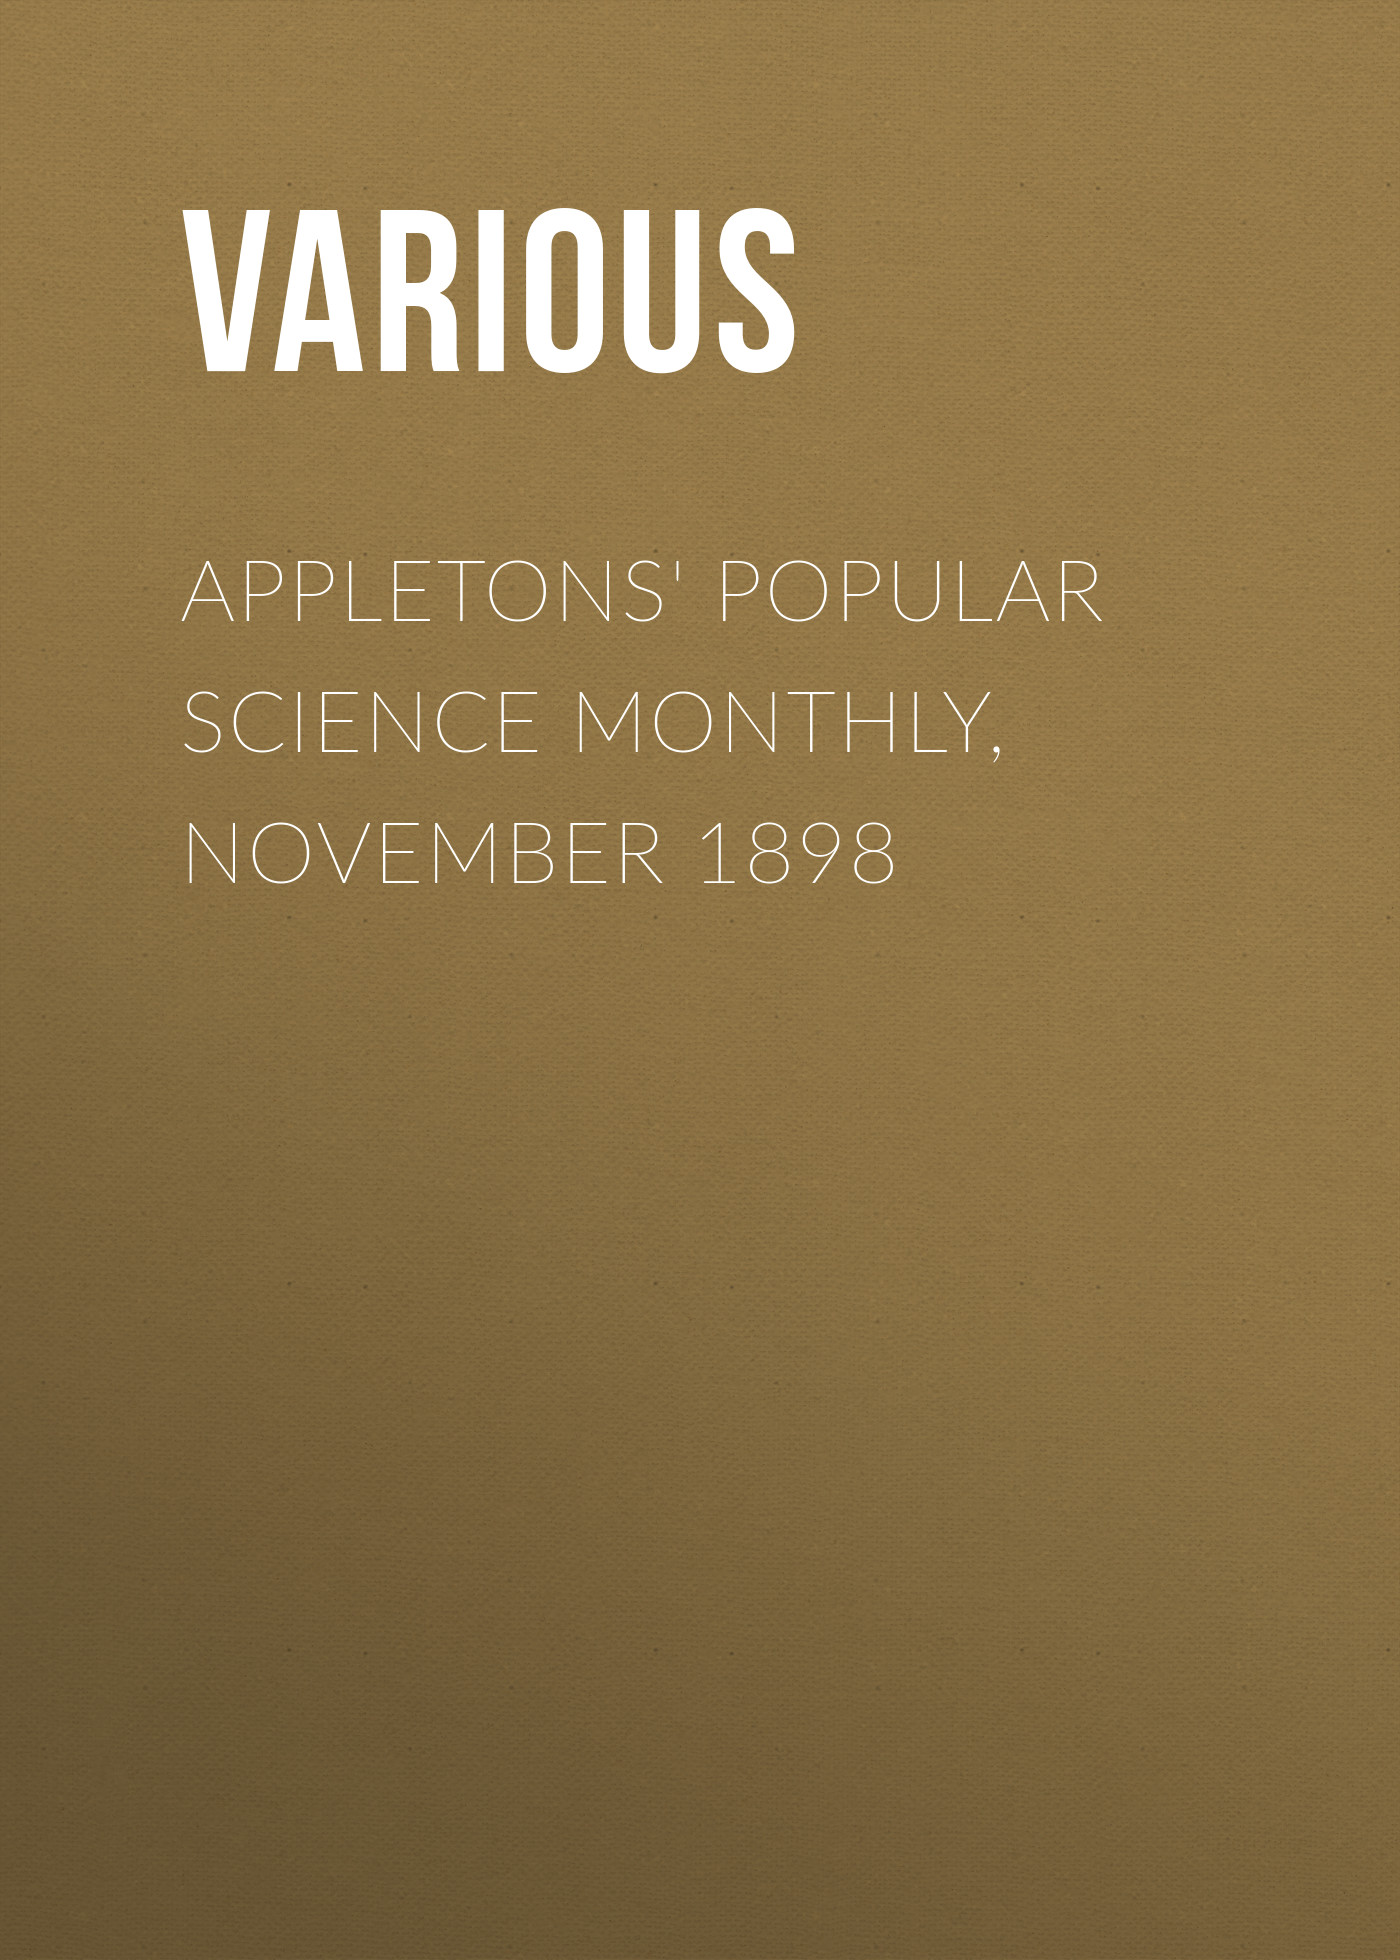 Various Appletons' Popular Science Monthly, November 1898